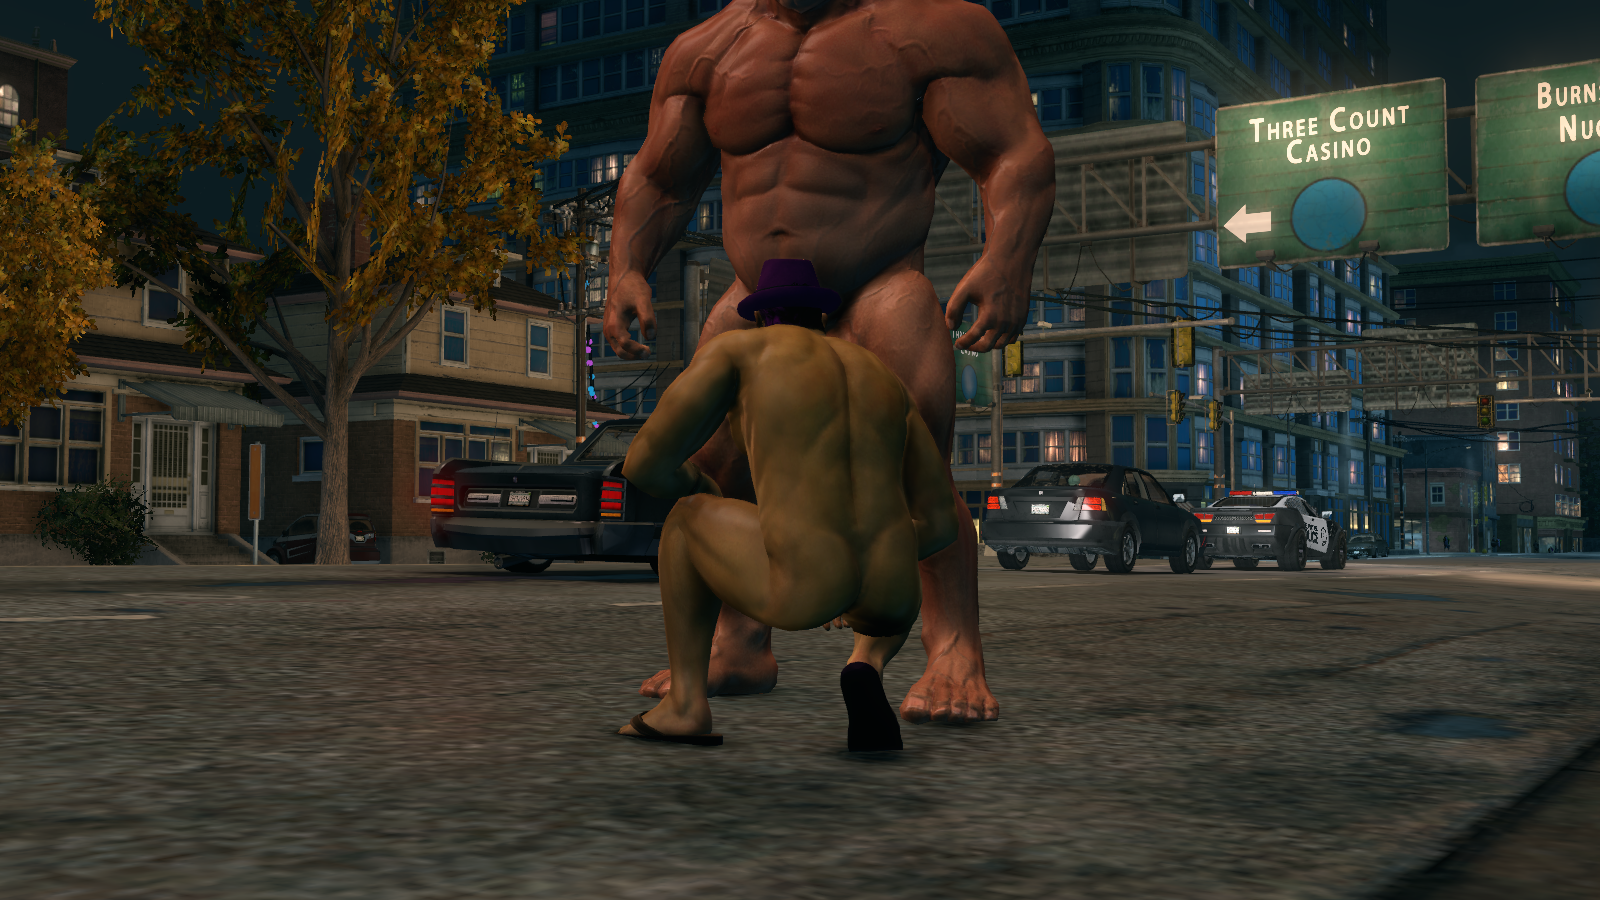 Saints row 4 nude mod download for  sex pics